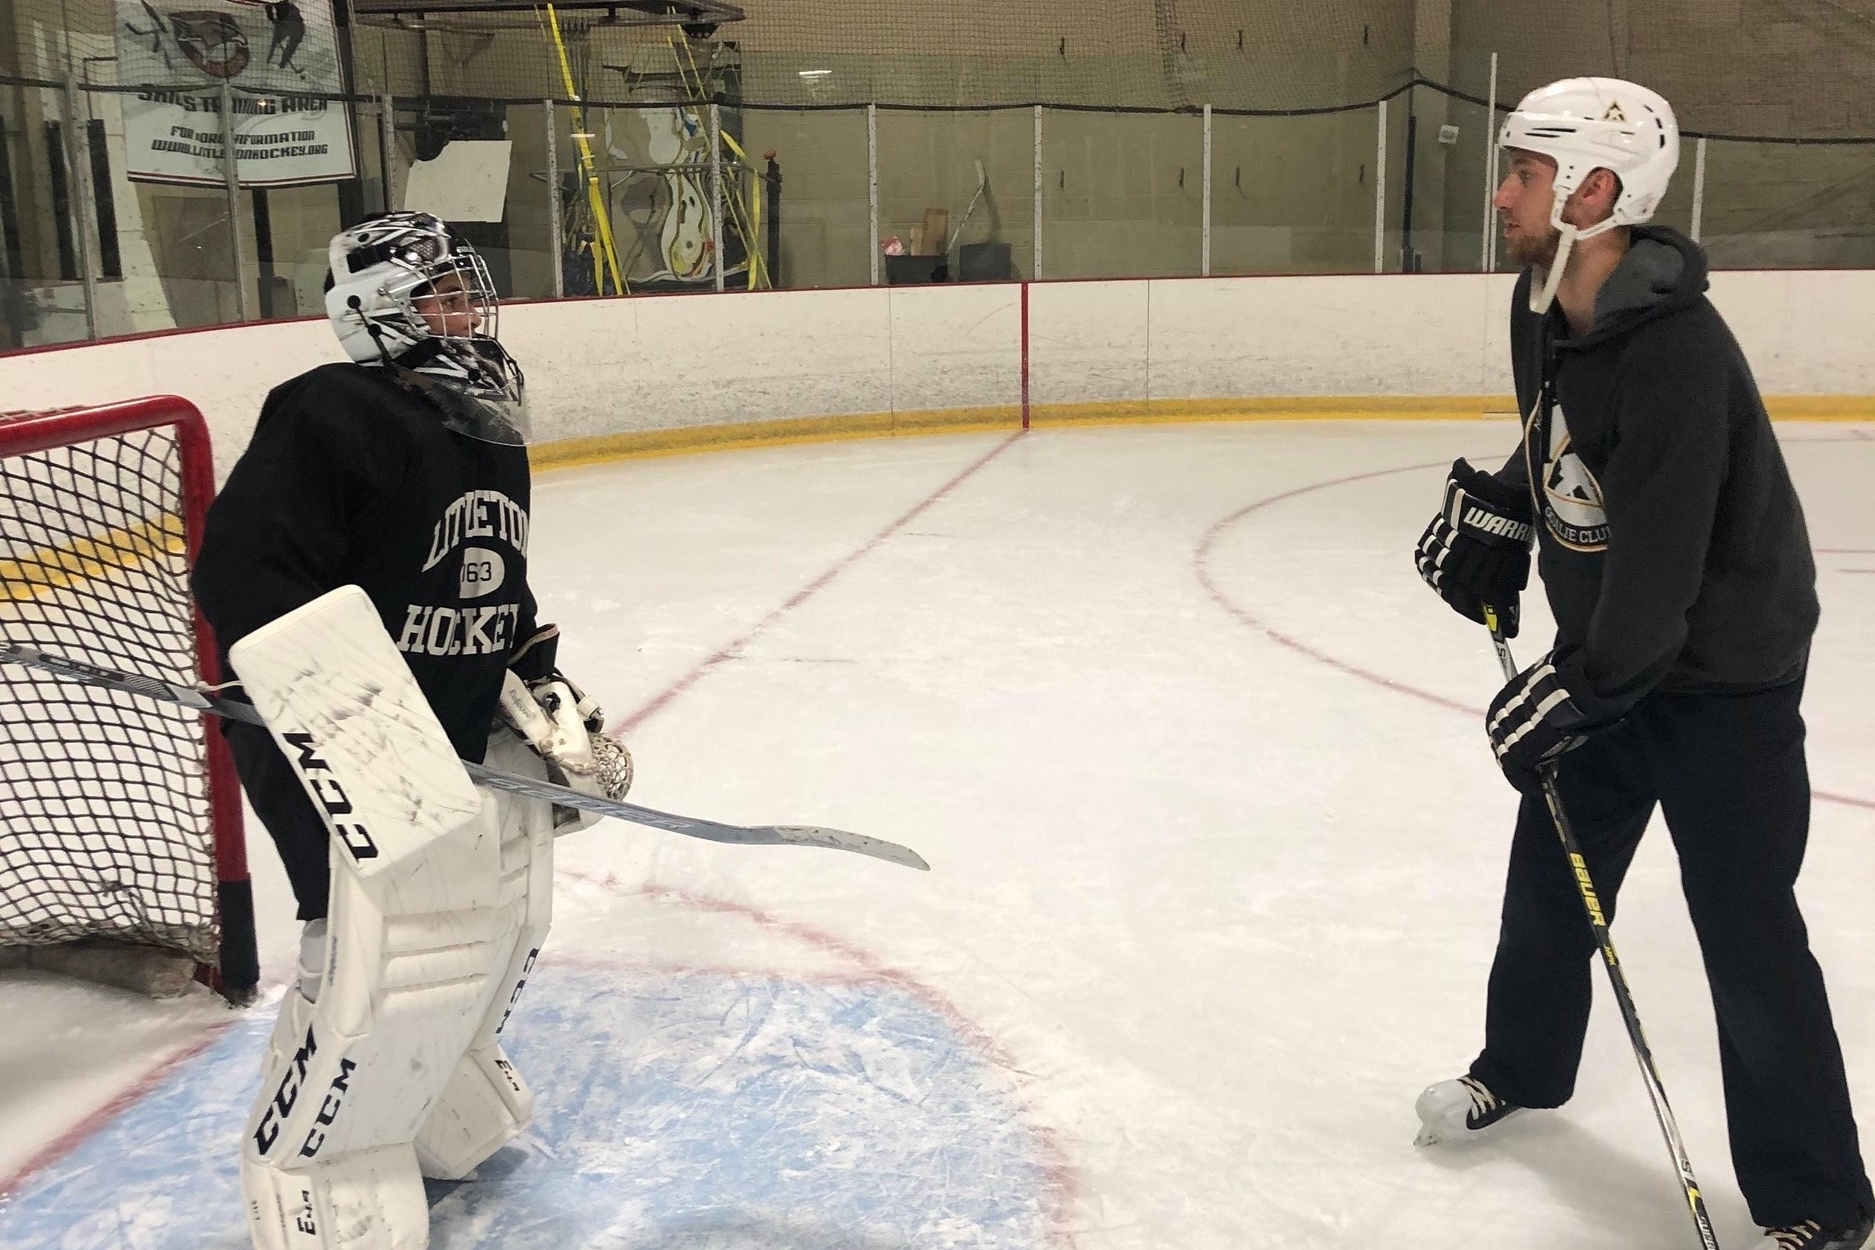 Jake Larson - Jake Larson grew up playing youth hockey in Colorado before moving out of state to play Junior A. Jake has extensive knowledge working with youth goalies having served as the goalie coach for the Arapahoe Learn to Play Program, Heritage High School (2014-2017) and working with MHH have for the past two seasons.